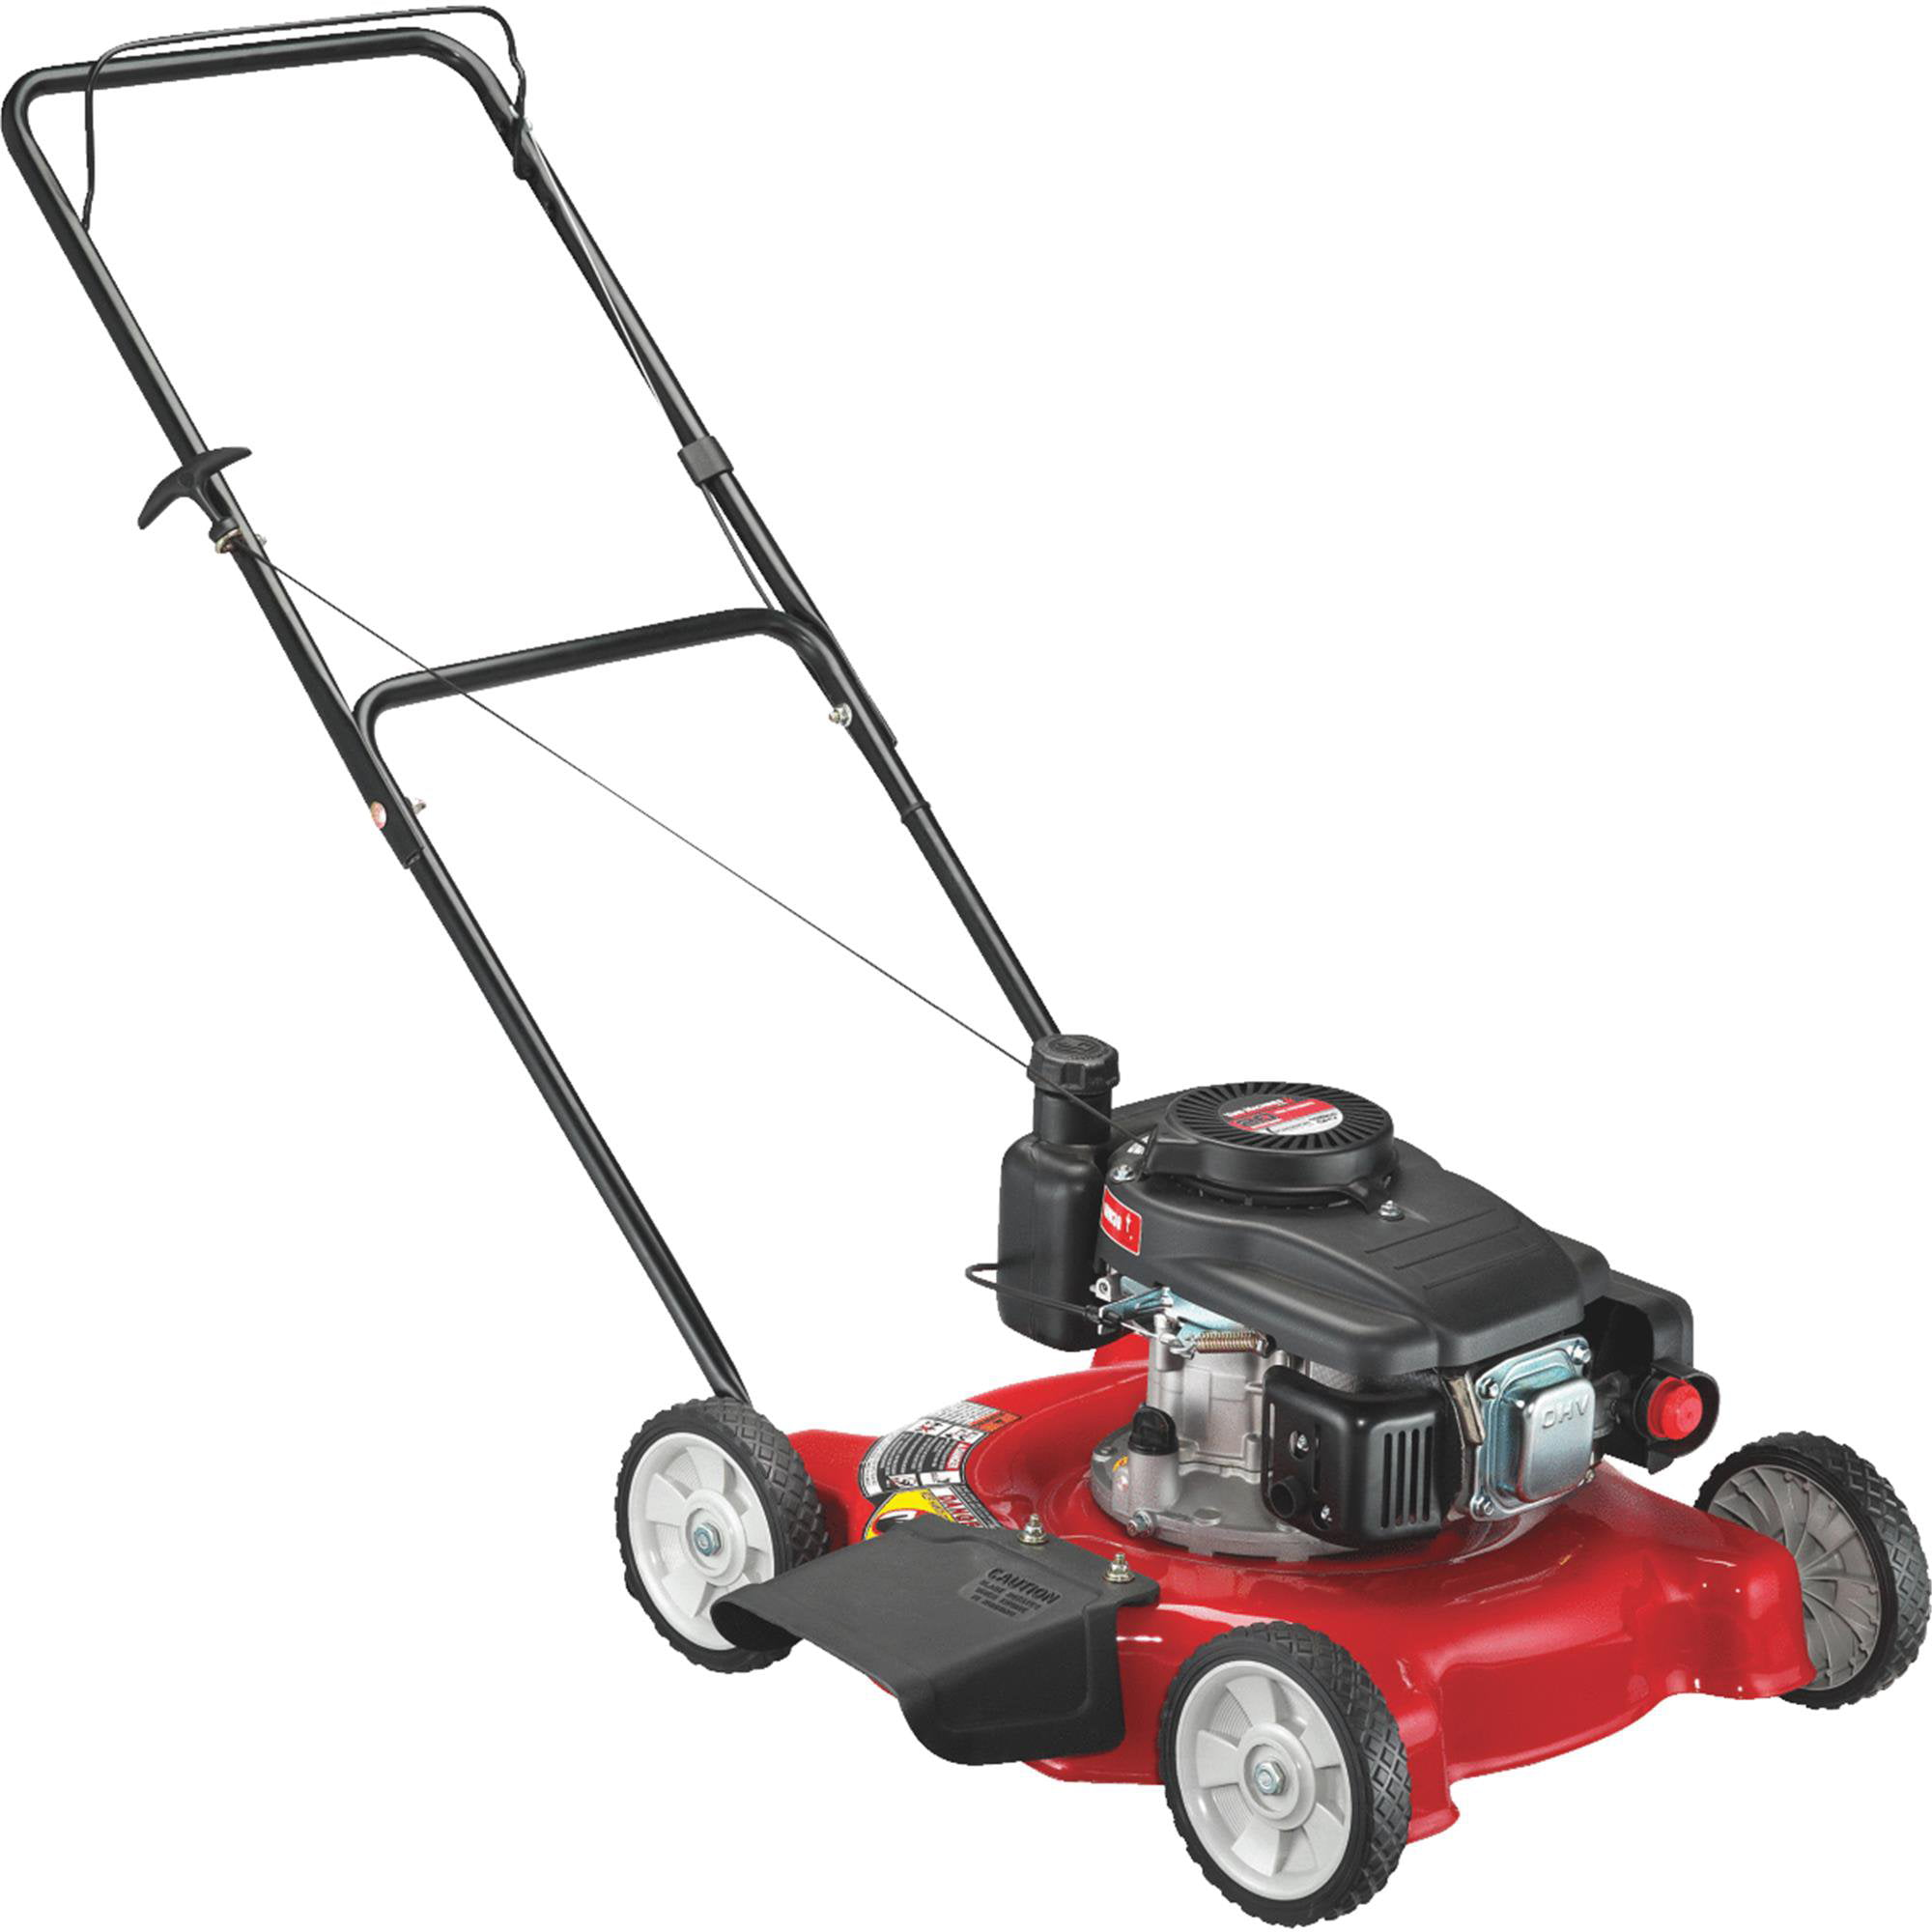 "Yard Machines 20"" Gas Push Lawn Mower with Side Discharge by Monterey Lawn and Garden"